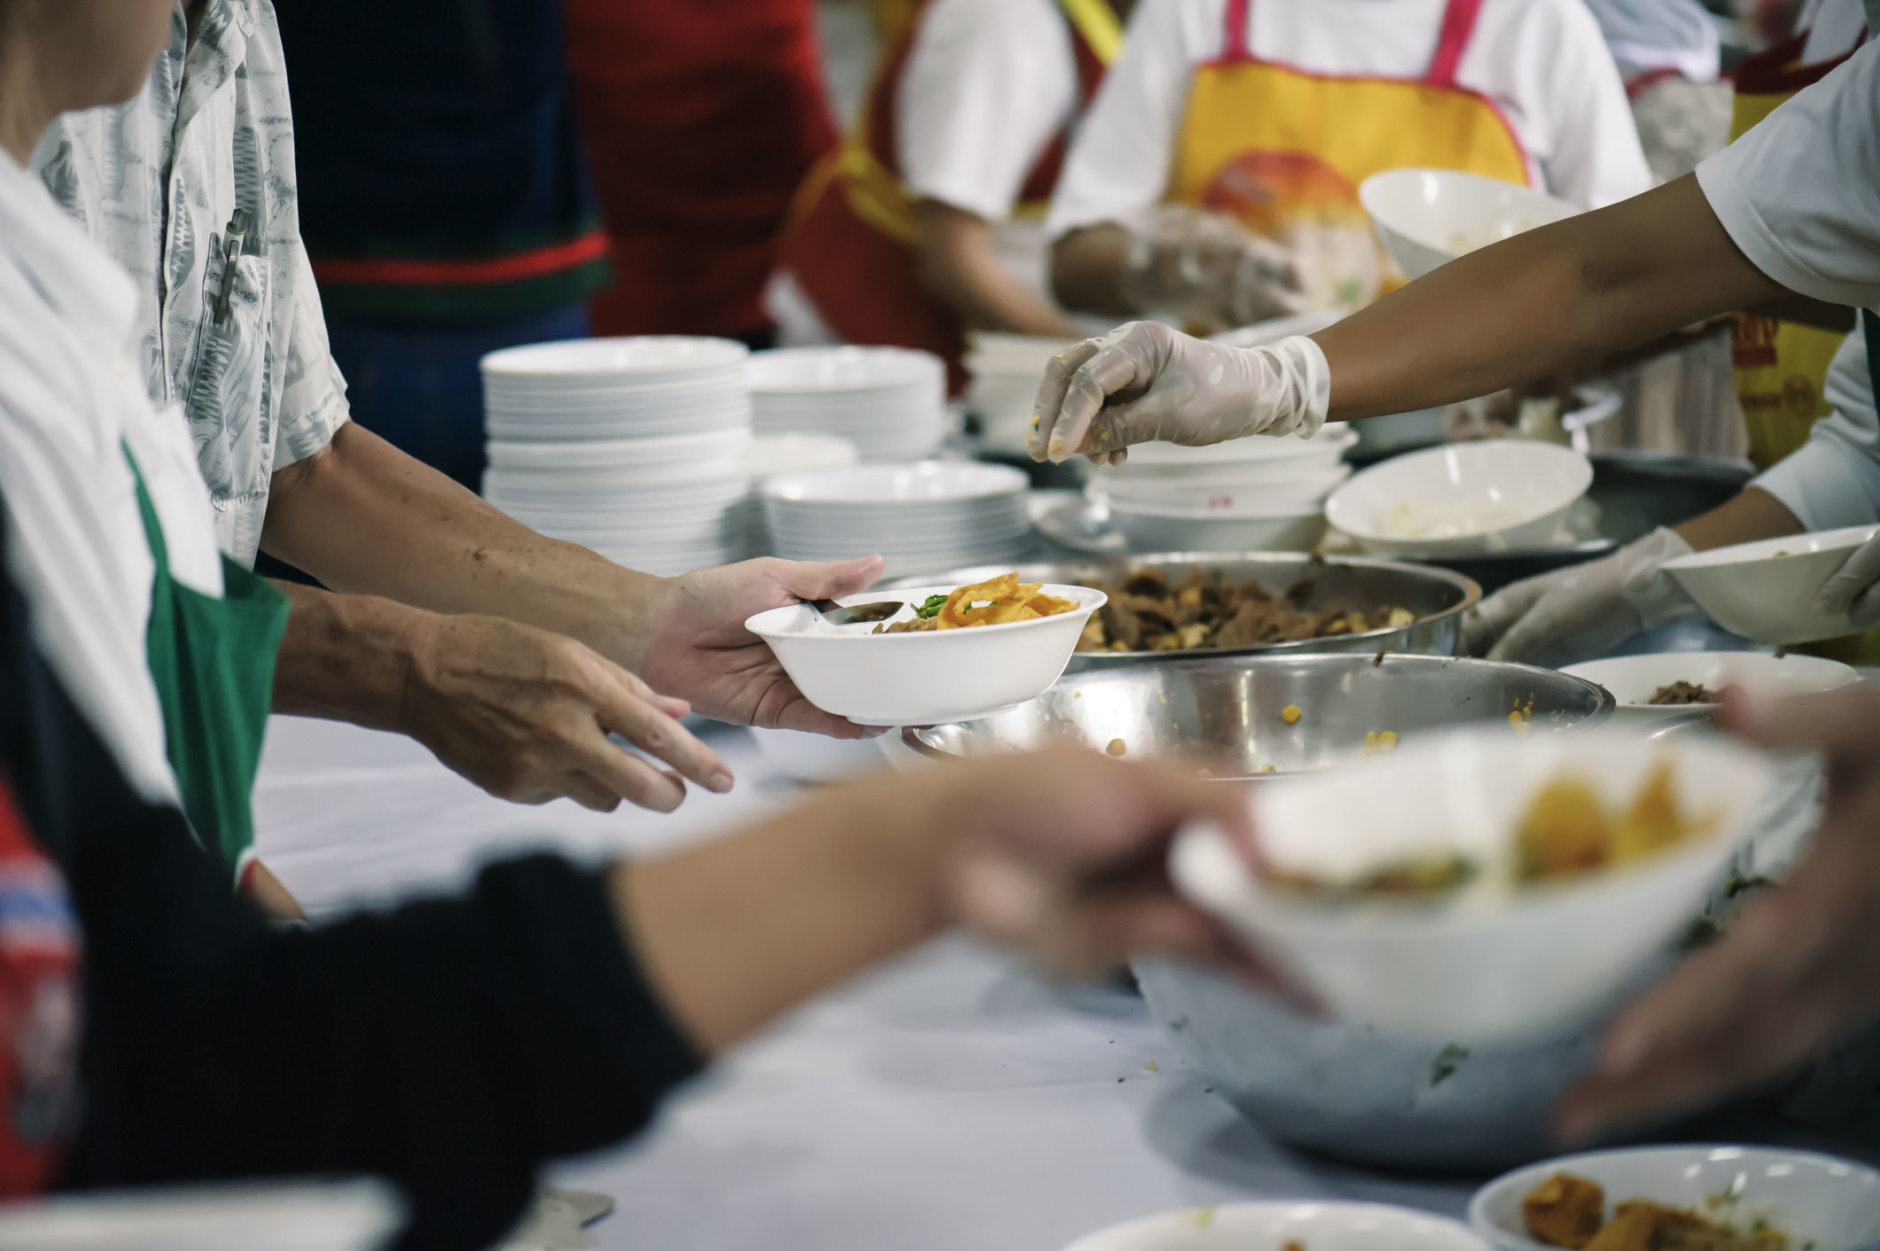 Volunteers Share Food to the Poor to Relieve Hunger: Charity concept (Getty Images/iStockphoto/kuarmungadd)